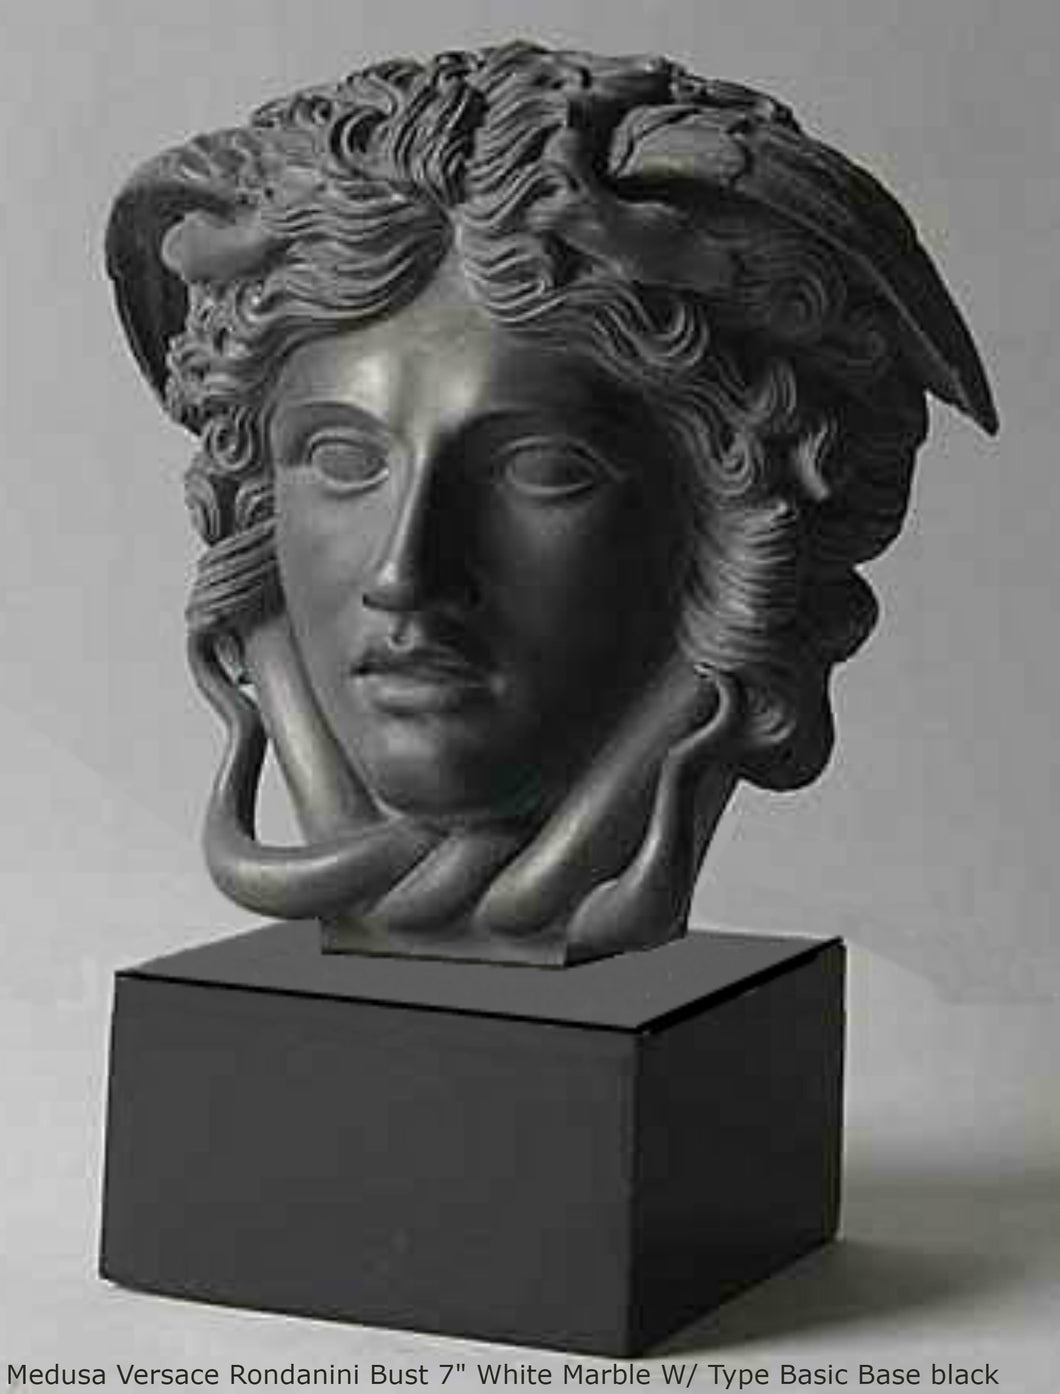 "History Medusa Versace Rondanini Bust design Artifact Carved Sculpture Statue 7"" www.Neo-Mfg.com Mounted on base"